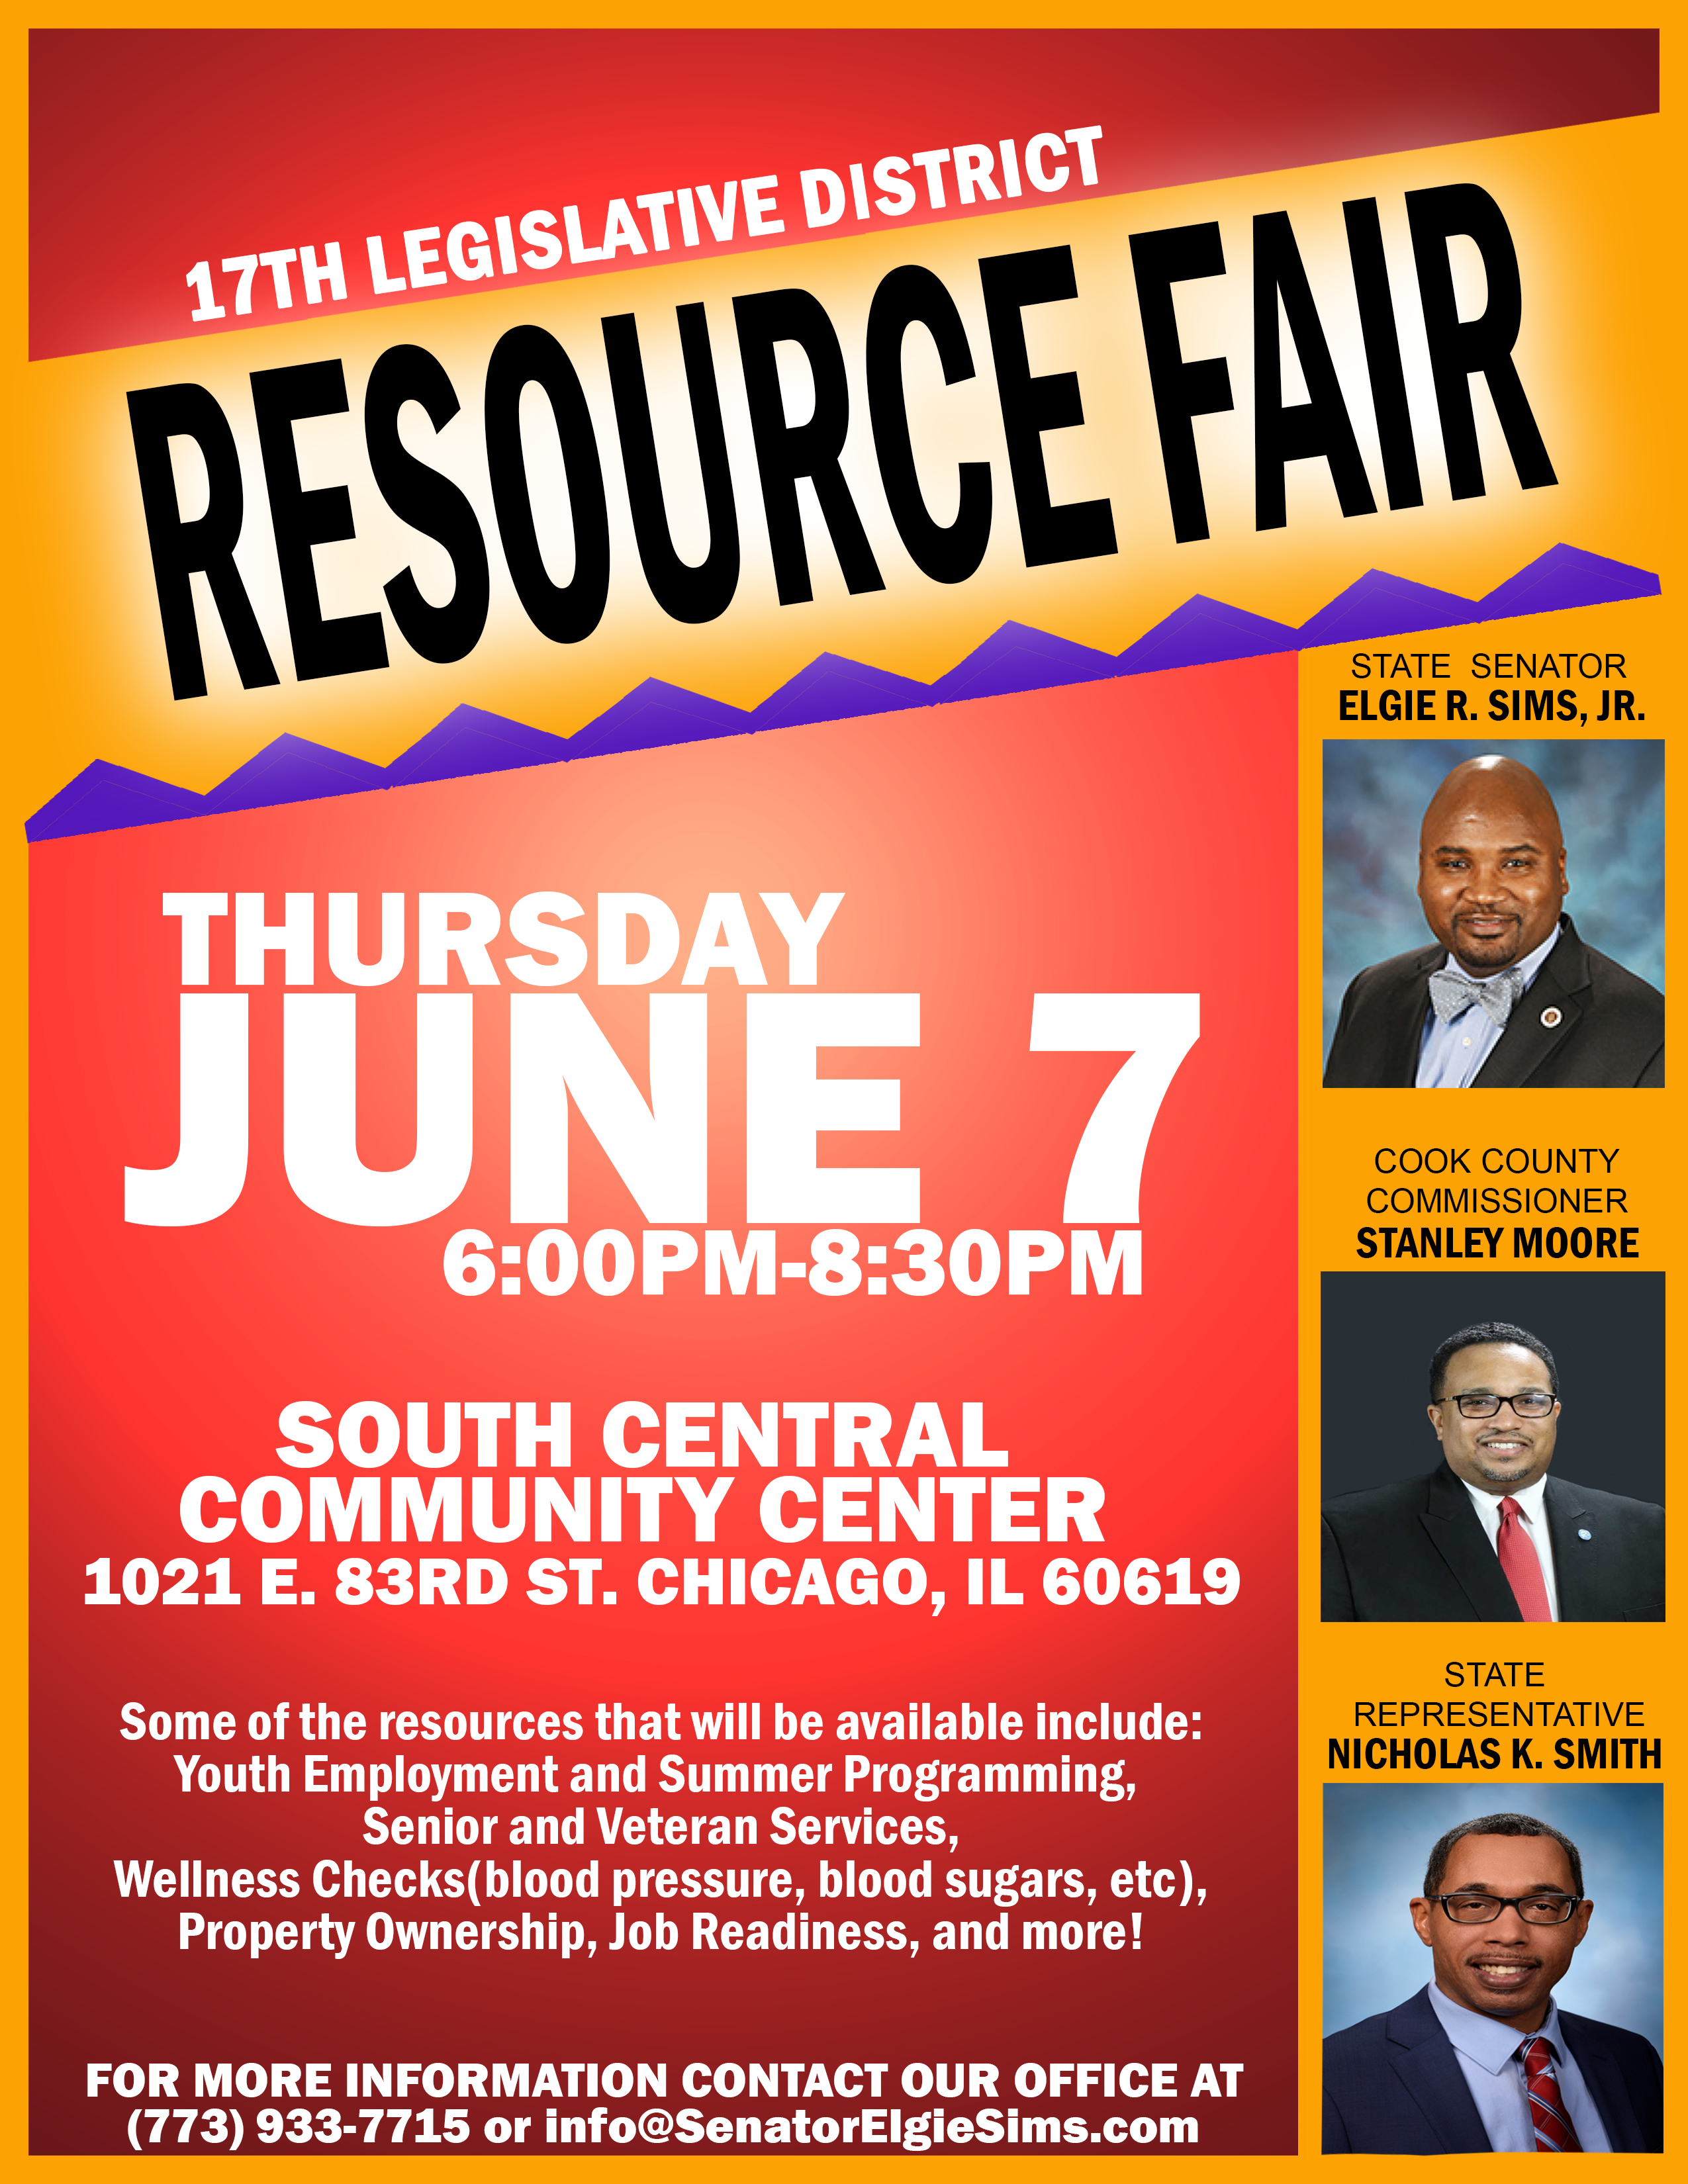 2018 RESOURCE FAIR FLIER FINAL